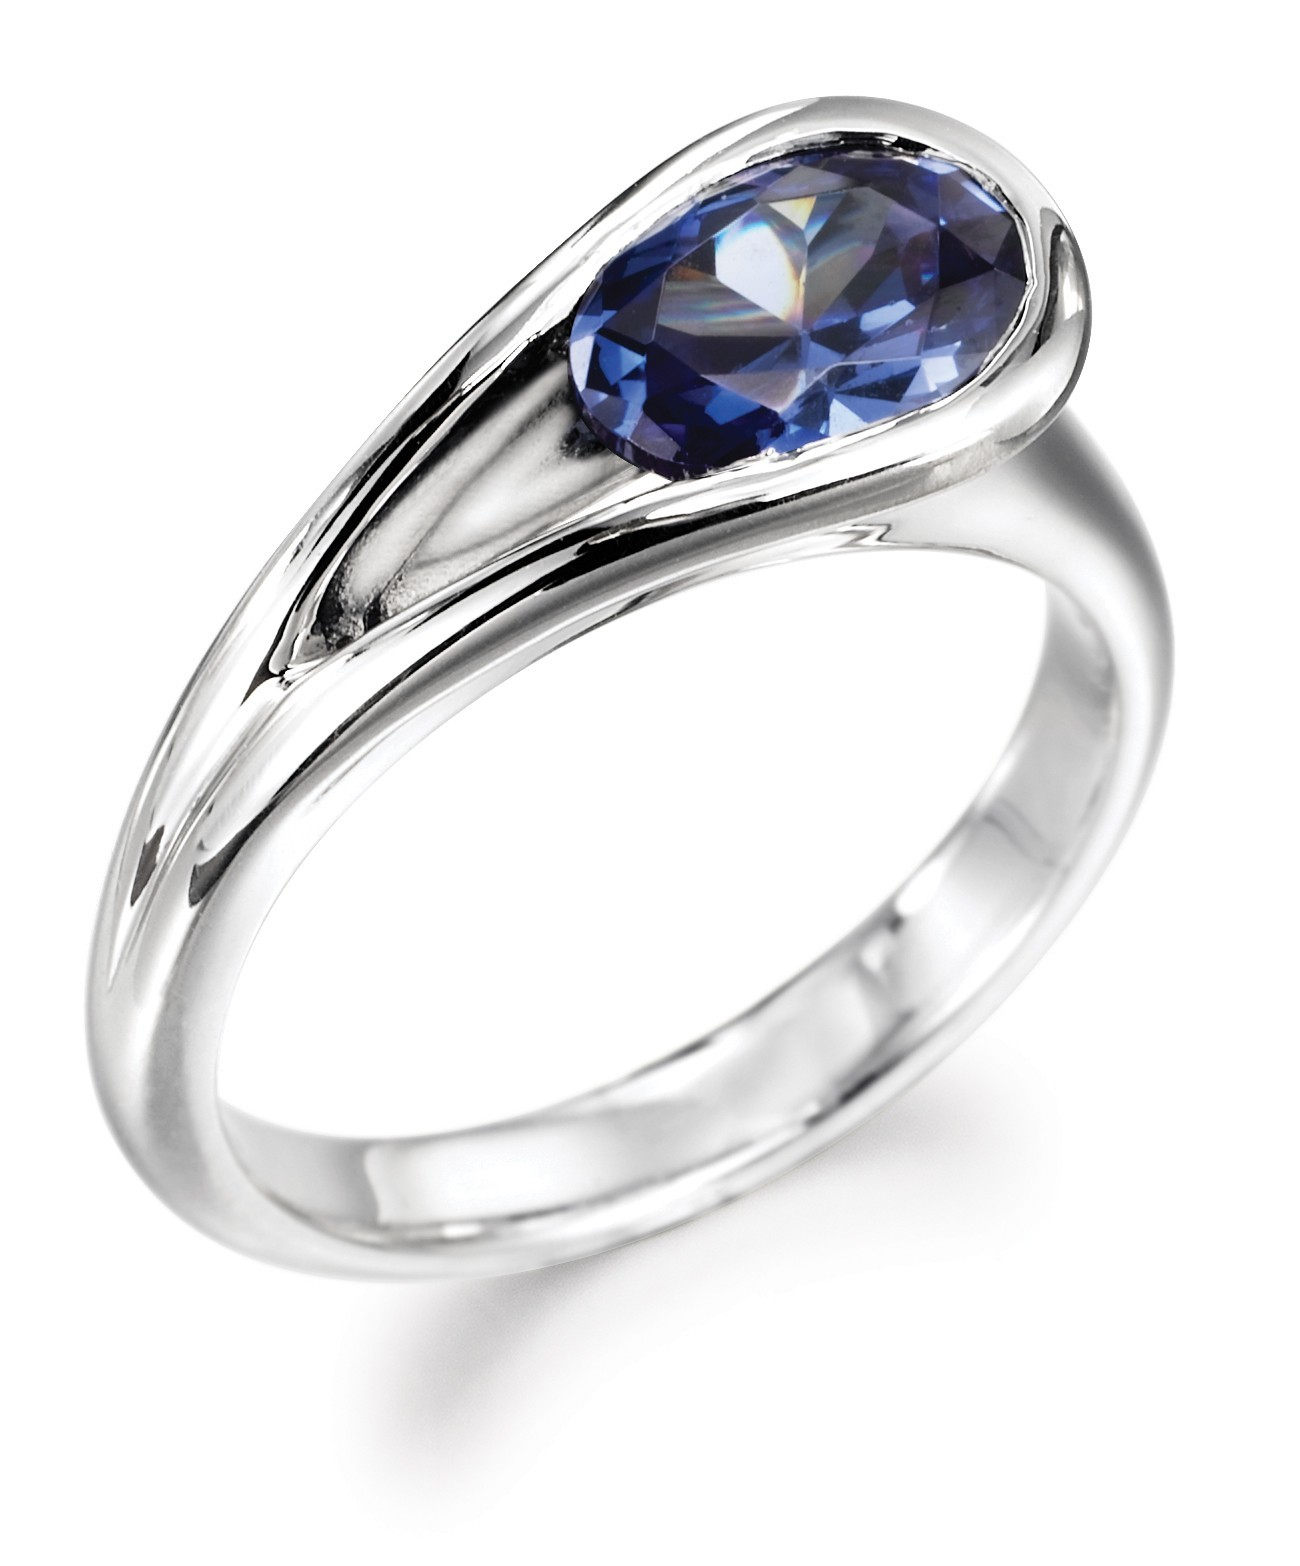 Diamond Rings Pictures High Definition Wallpapers High